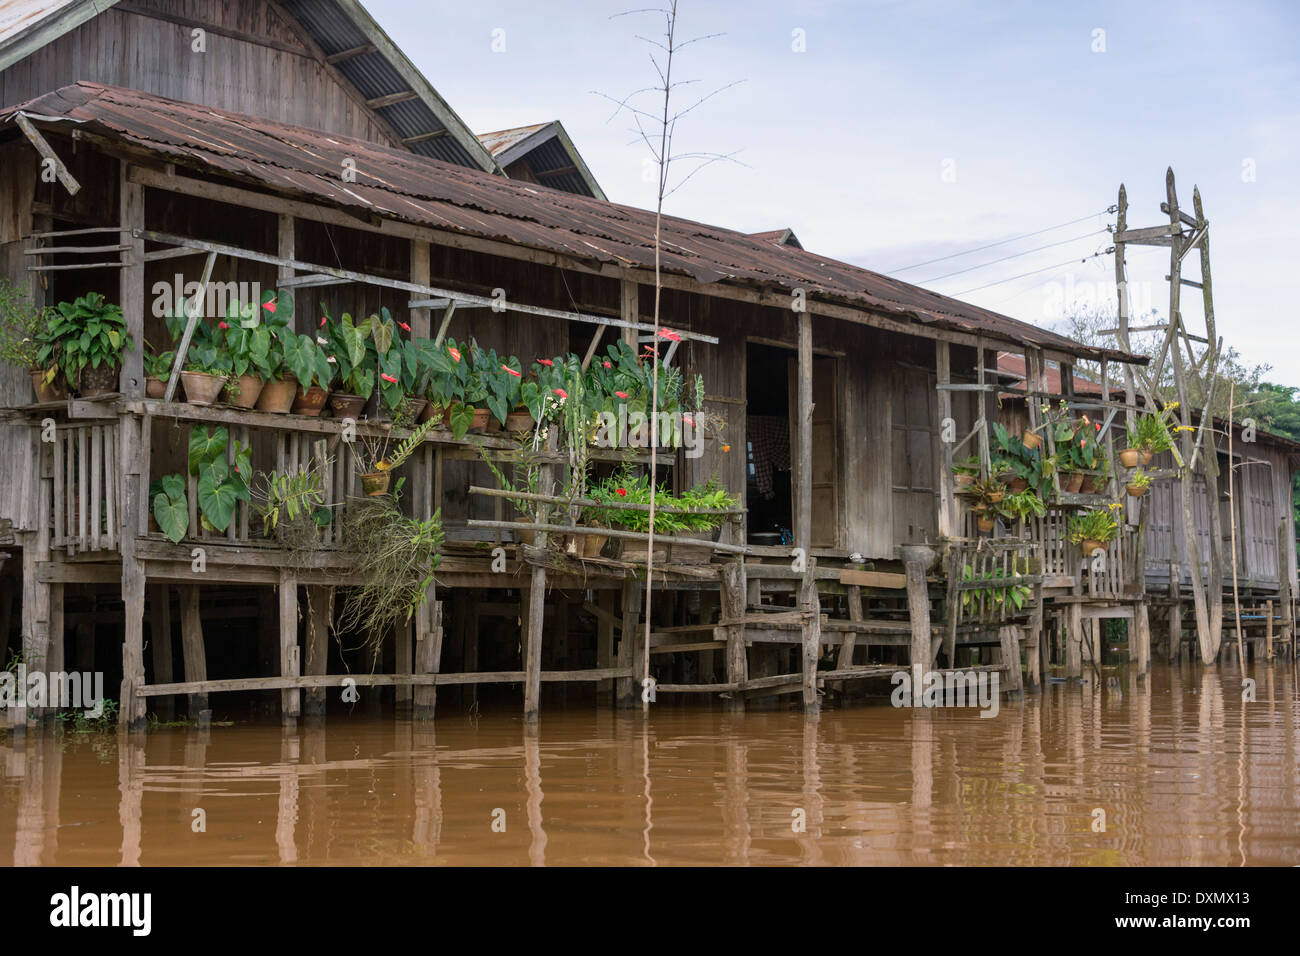 Stilt house with potted plants, Inle Lake, Myanmar - Stock Image